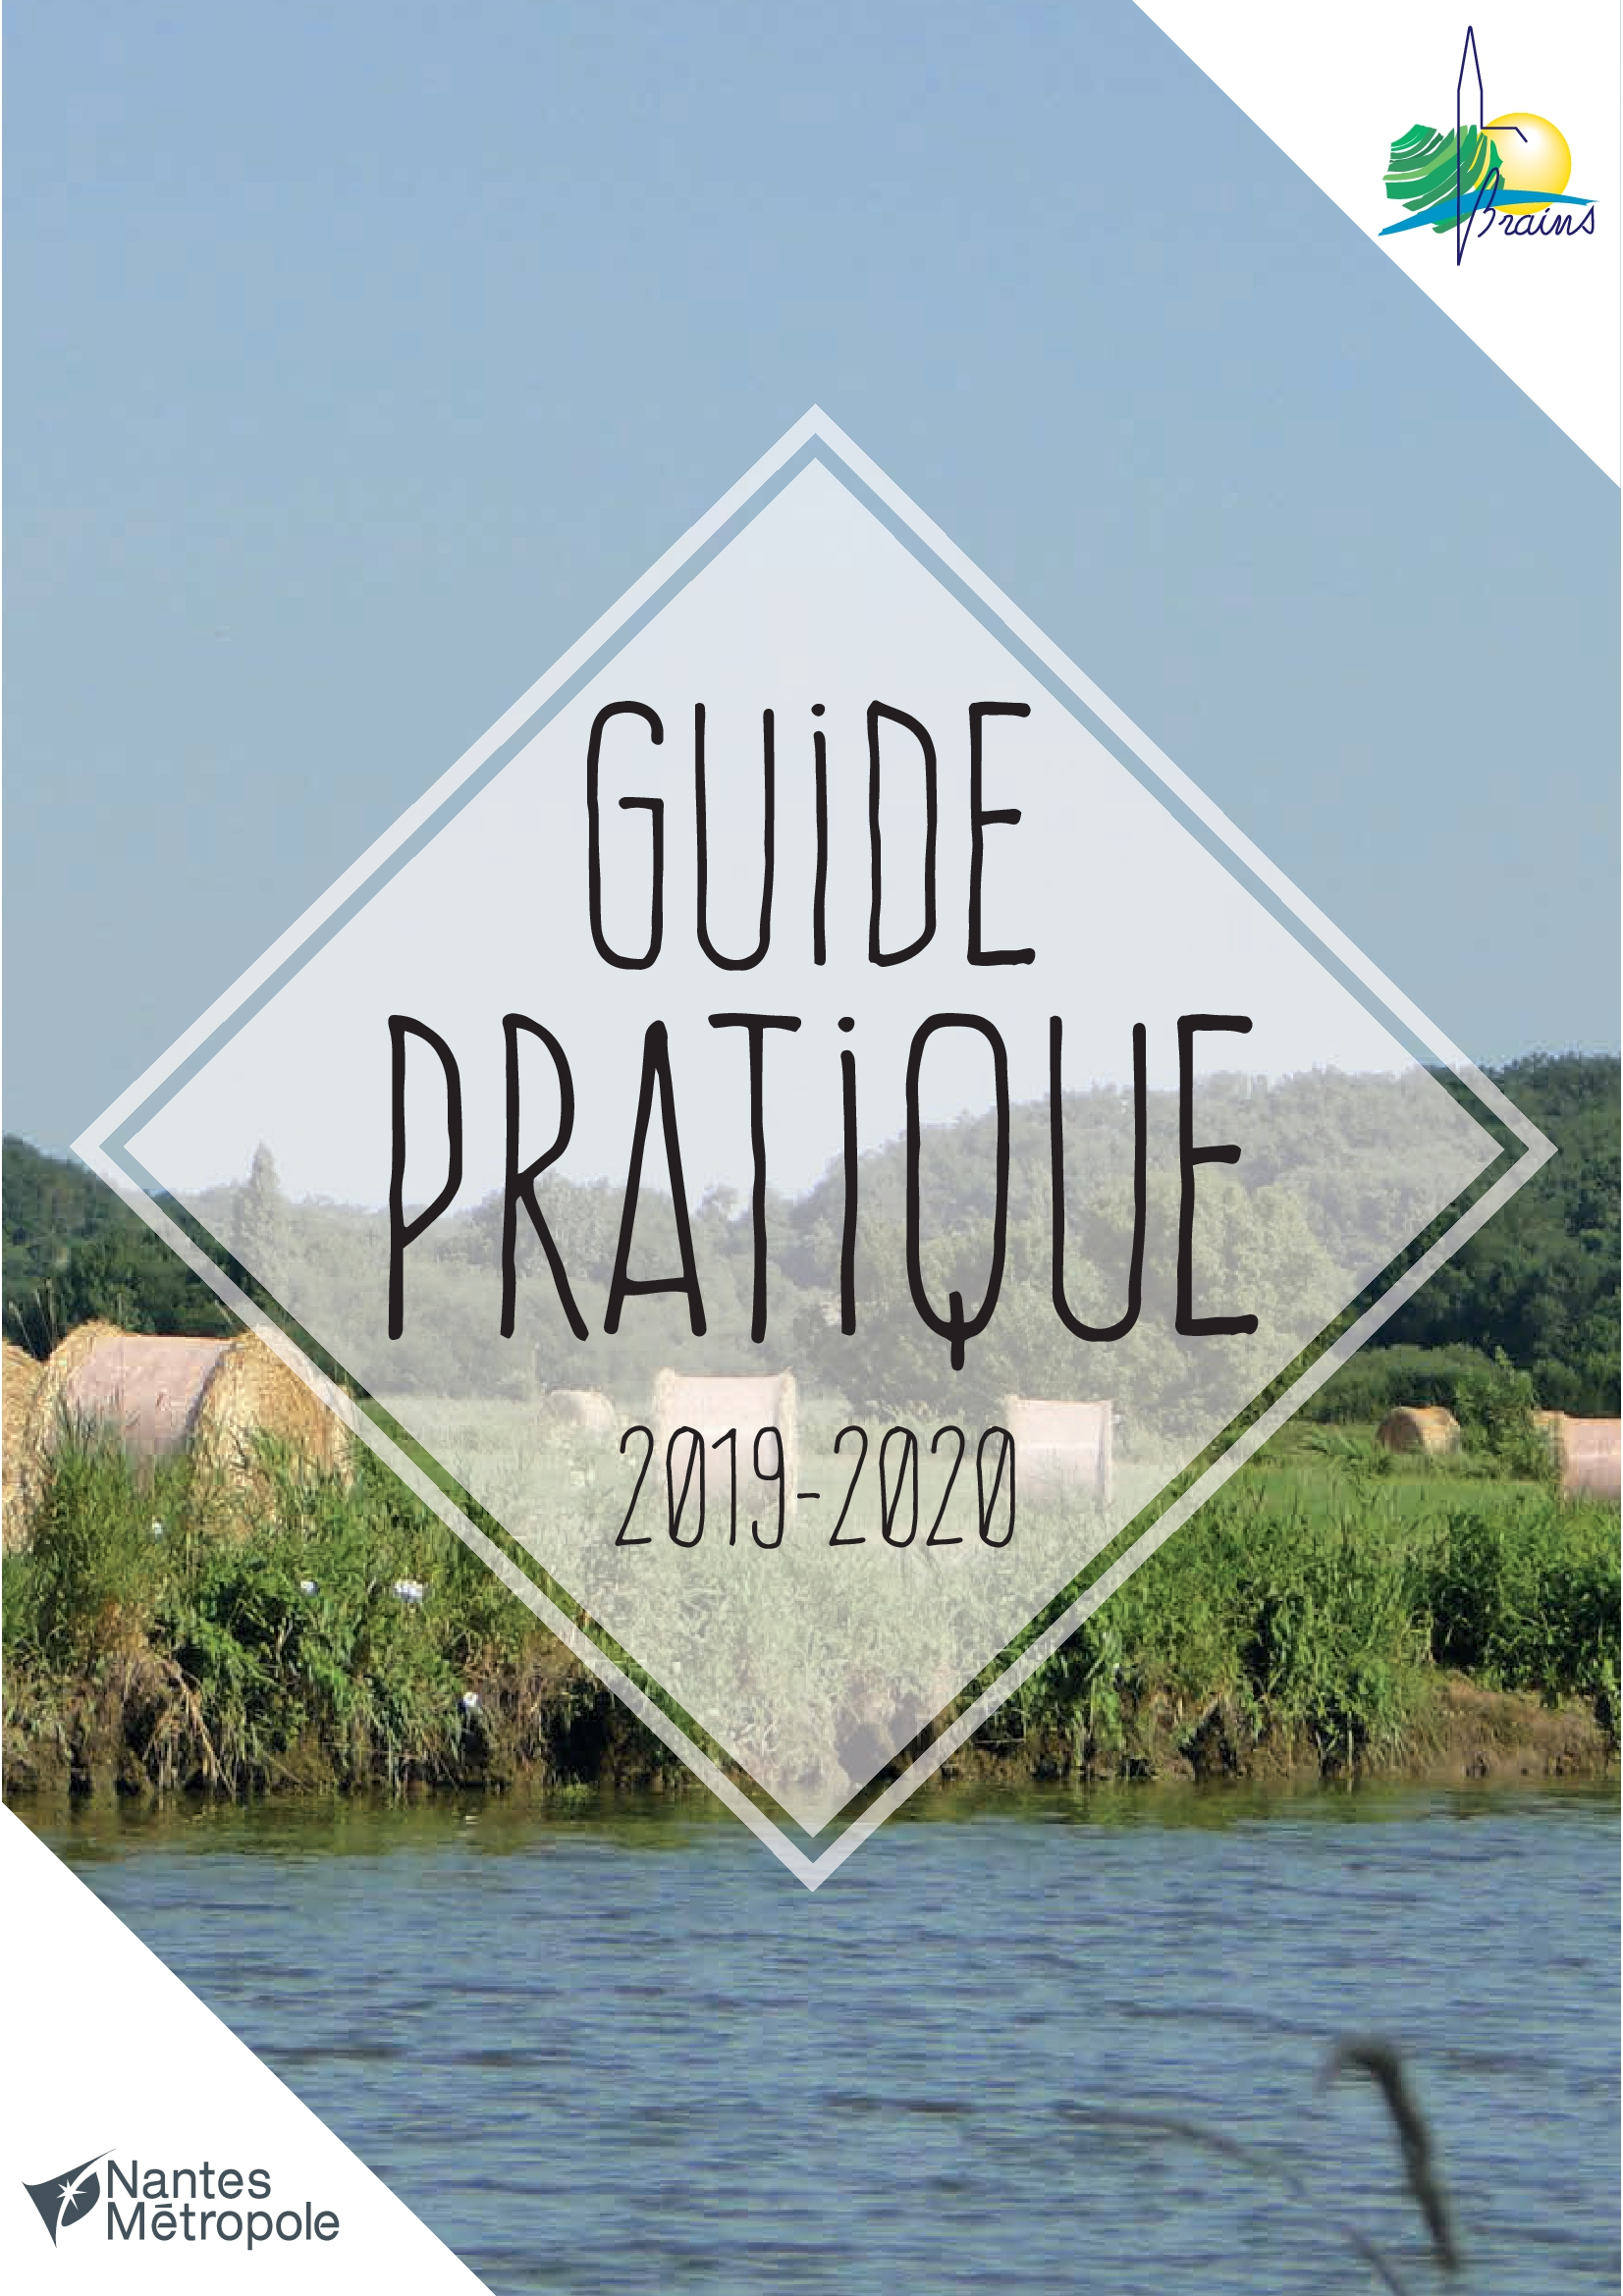 Int-Guide Pratique Brains 2019-2020_WEB01.jpg